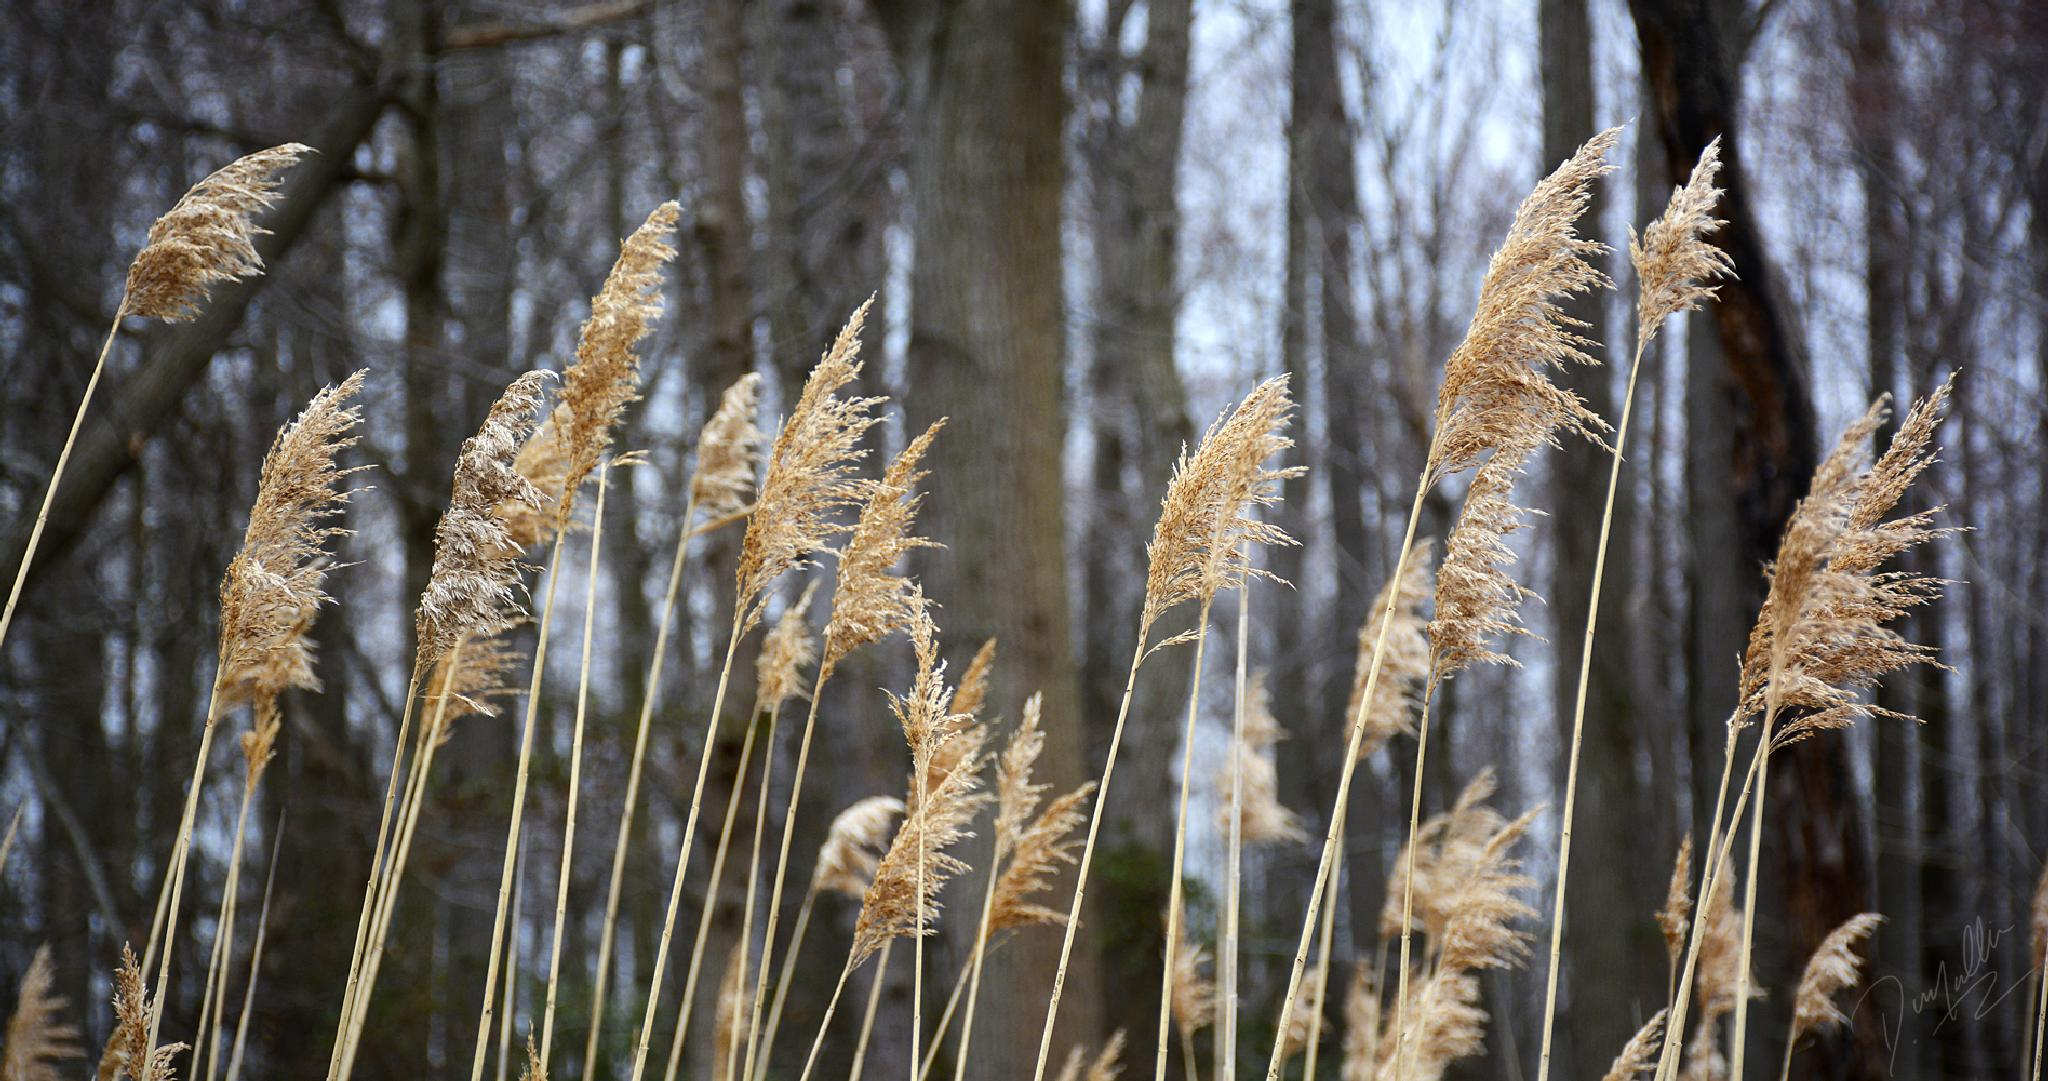 Indian Grass 2 by Dennis Mullin